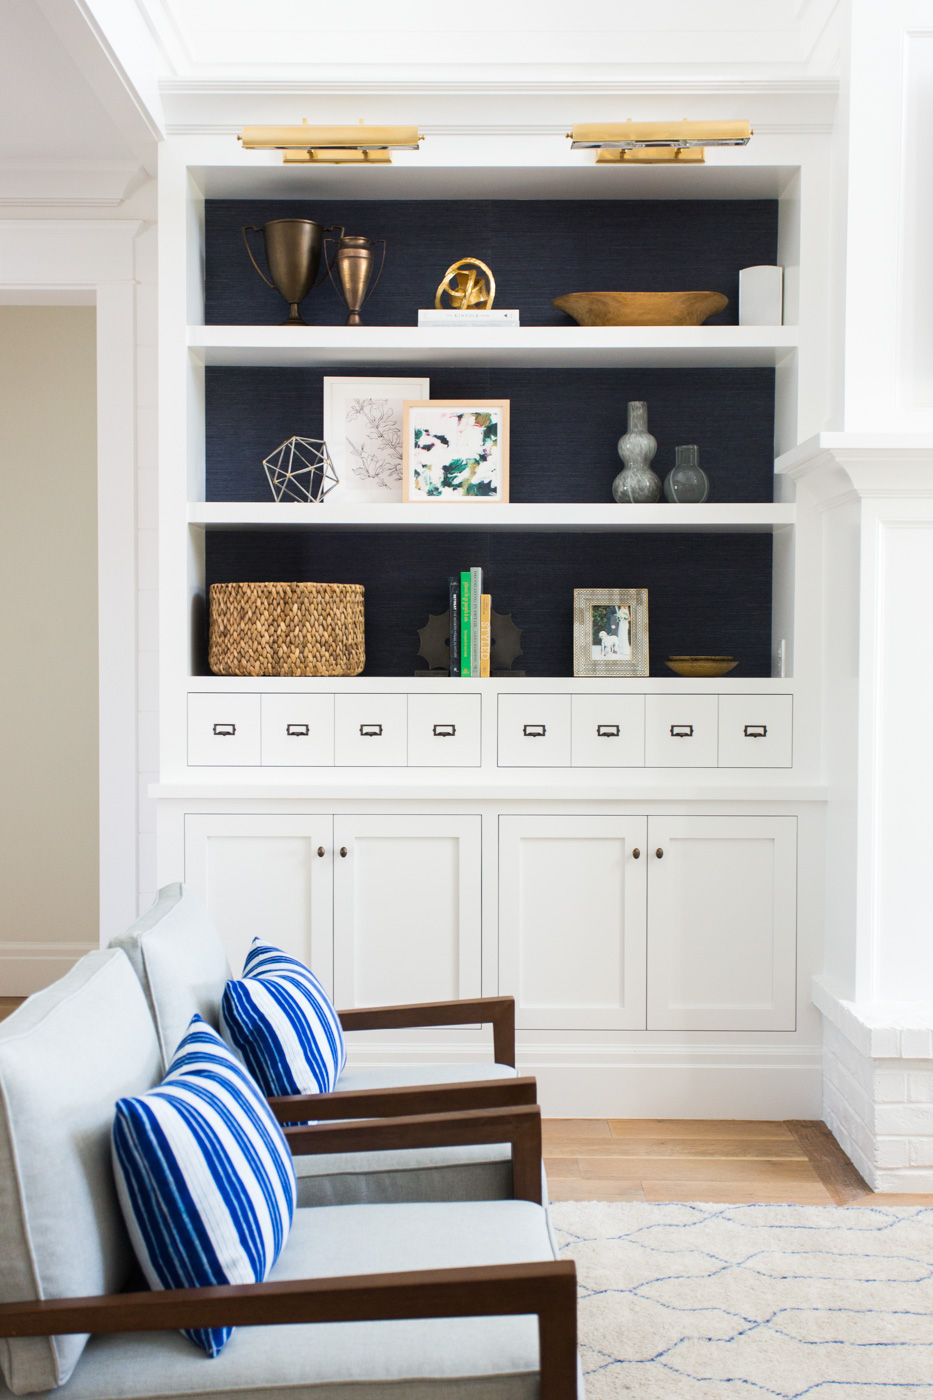 White chairs with built in shelves in background